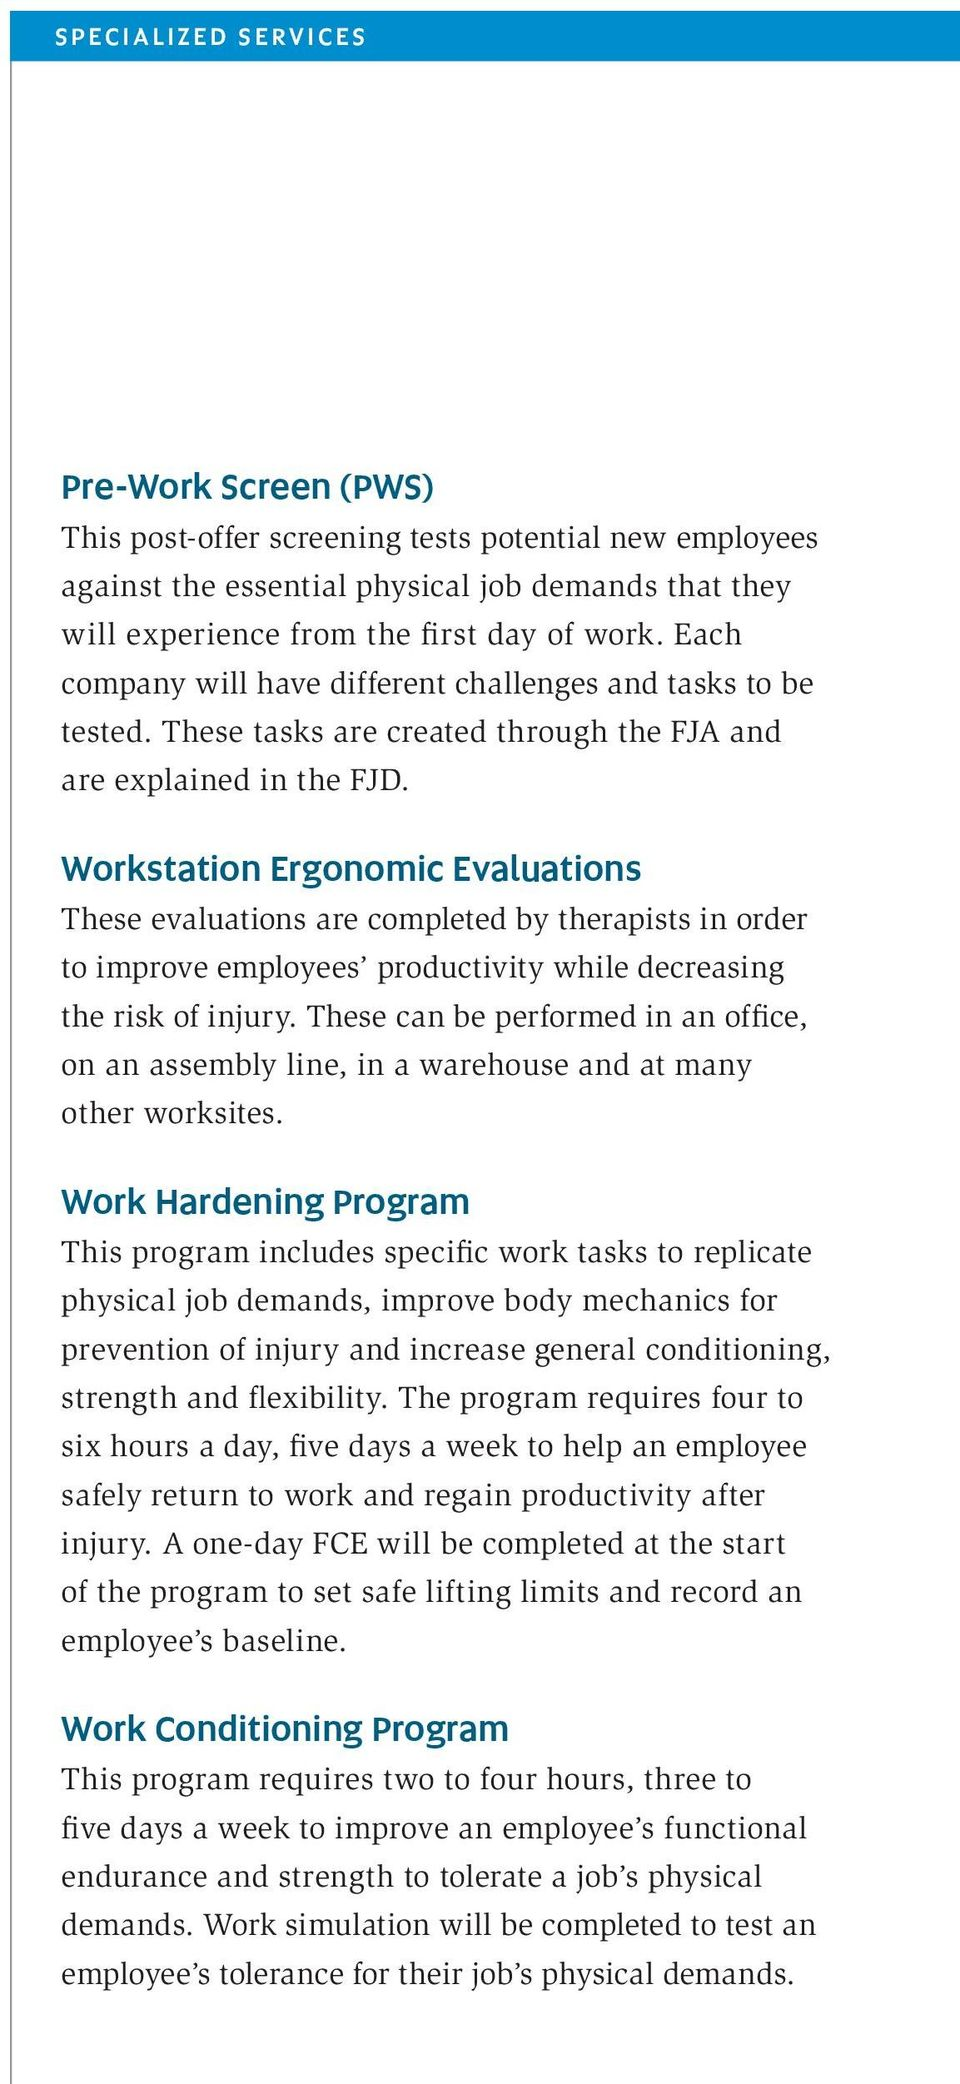 Workstation Ergonomic Evaluations These evaluations are completed by therapists in order to improve employees productivity while decreasing the risk of injury.